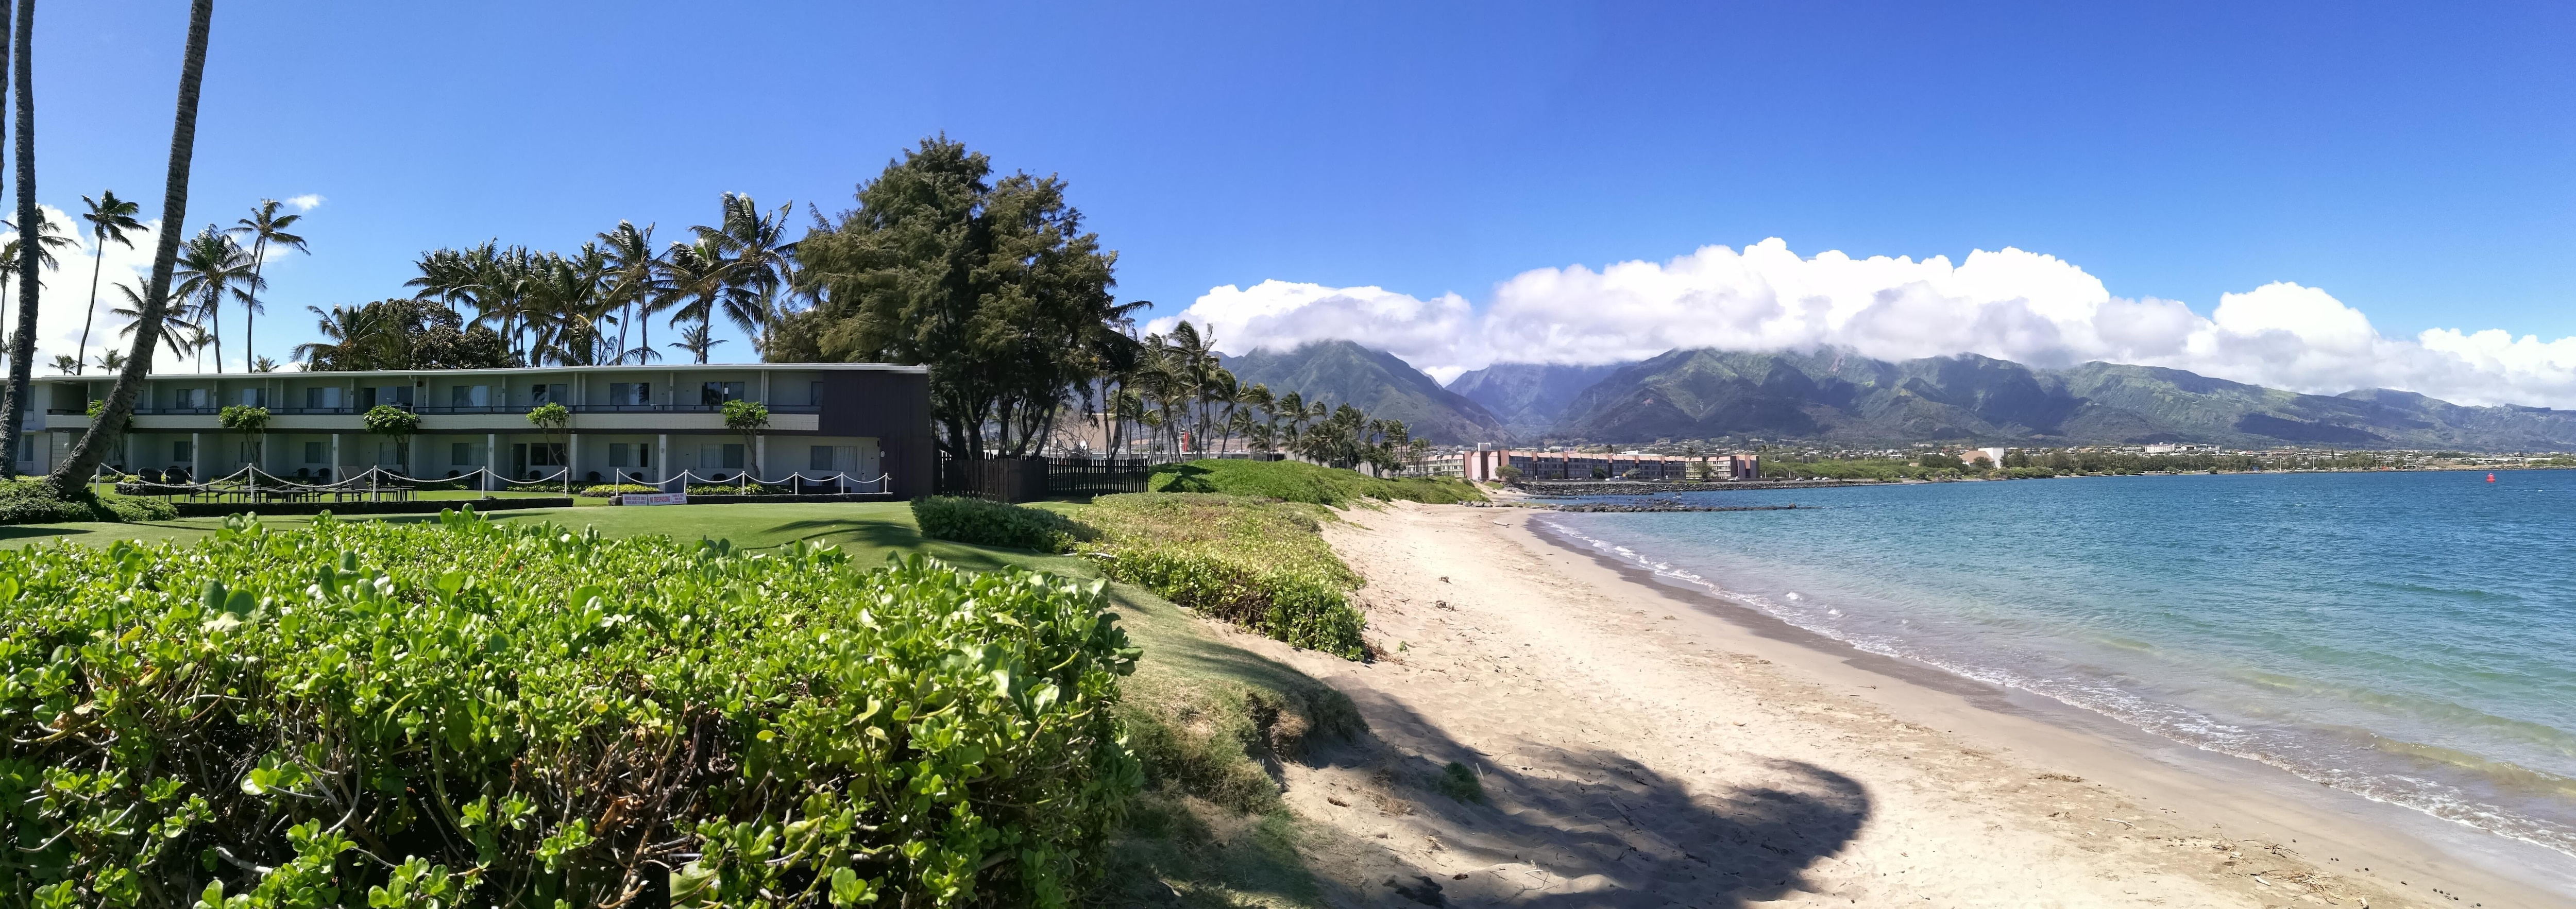 Beachfront view from grounds